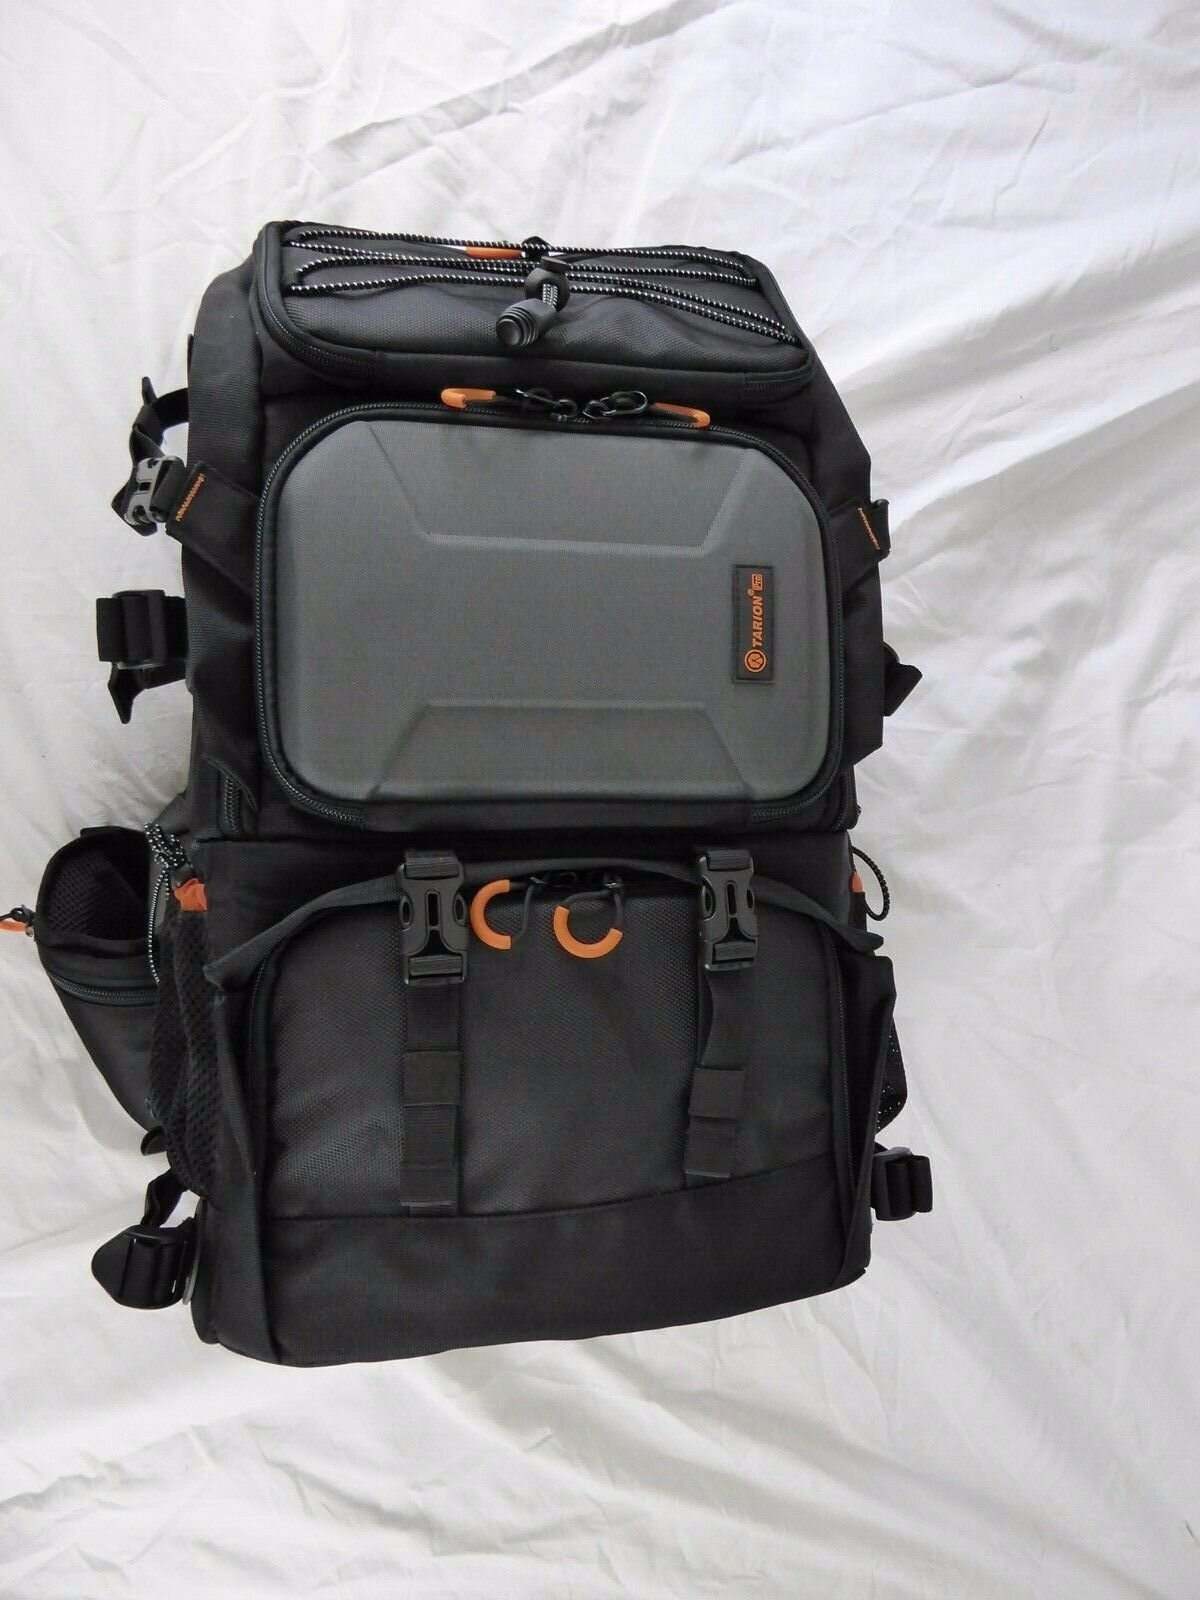 TARION Pro PB-01 Camera Backpack Large Capacity Photography Water Resistant Bag